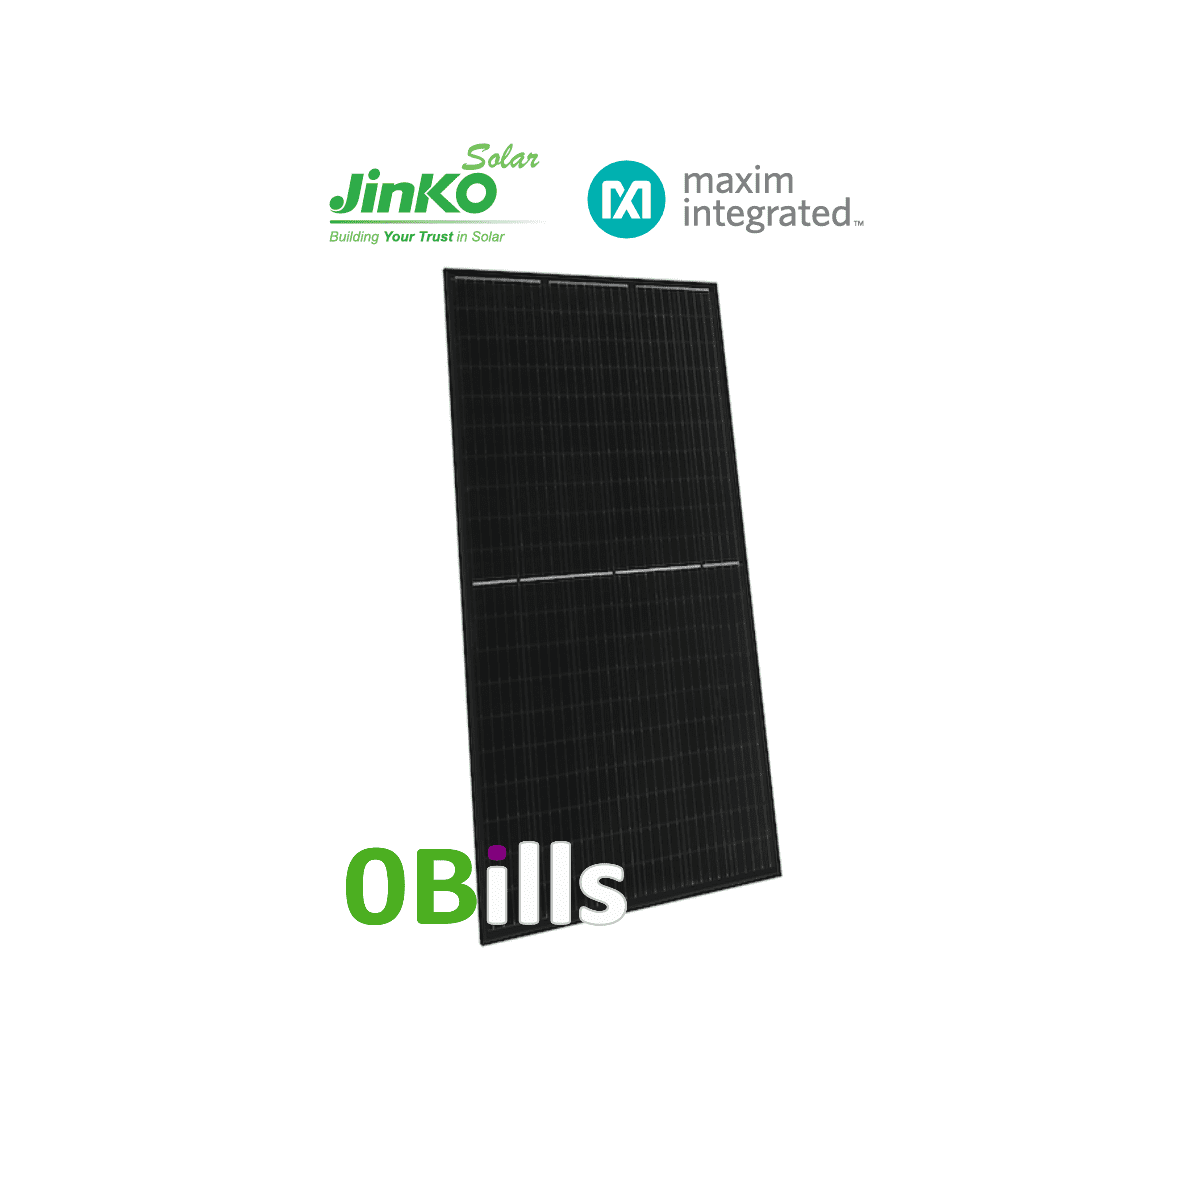 Jinko Cheetah Maxim Integrated 330W Solar Panel JKMS330M-60HB-MX3 for Sale